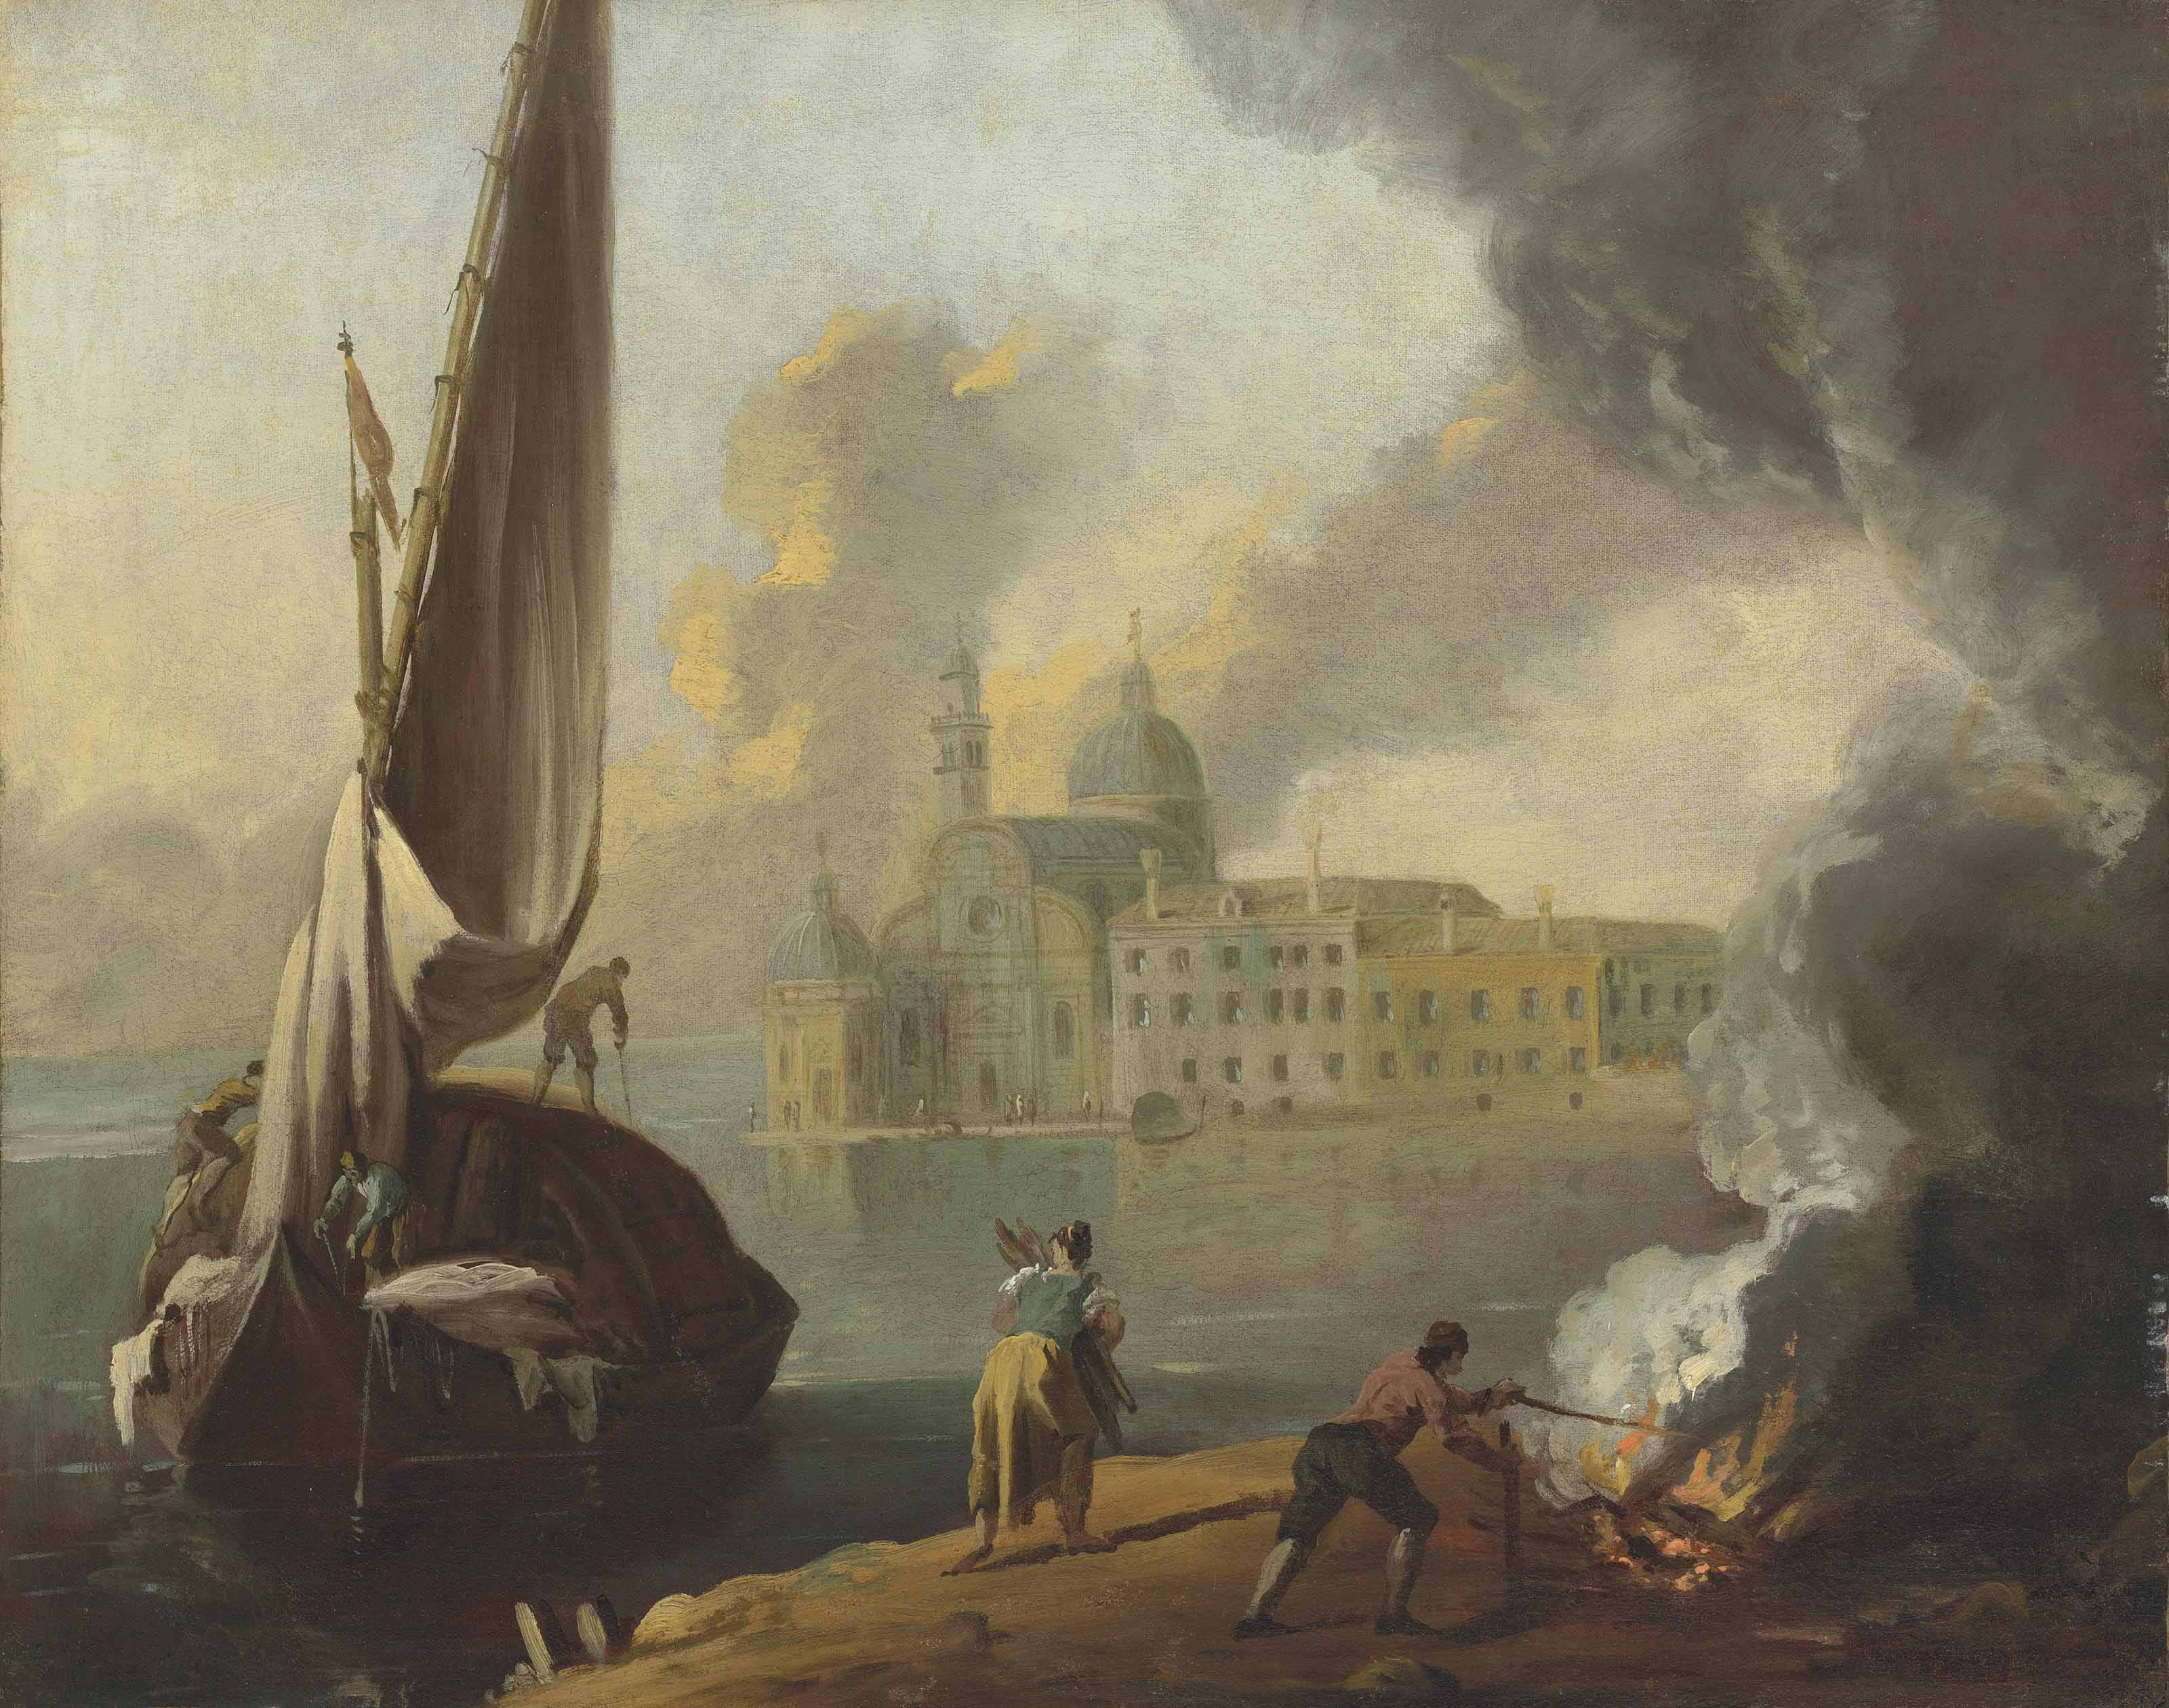 San Michele, Venice, with a boat docking and figures lighting a fire on the shore in the foreground